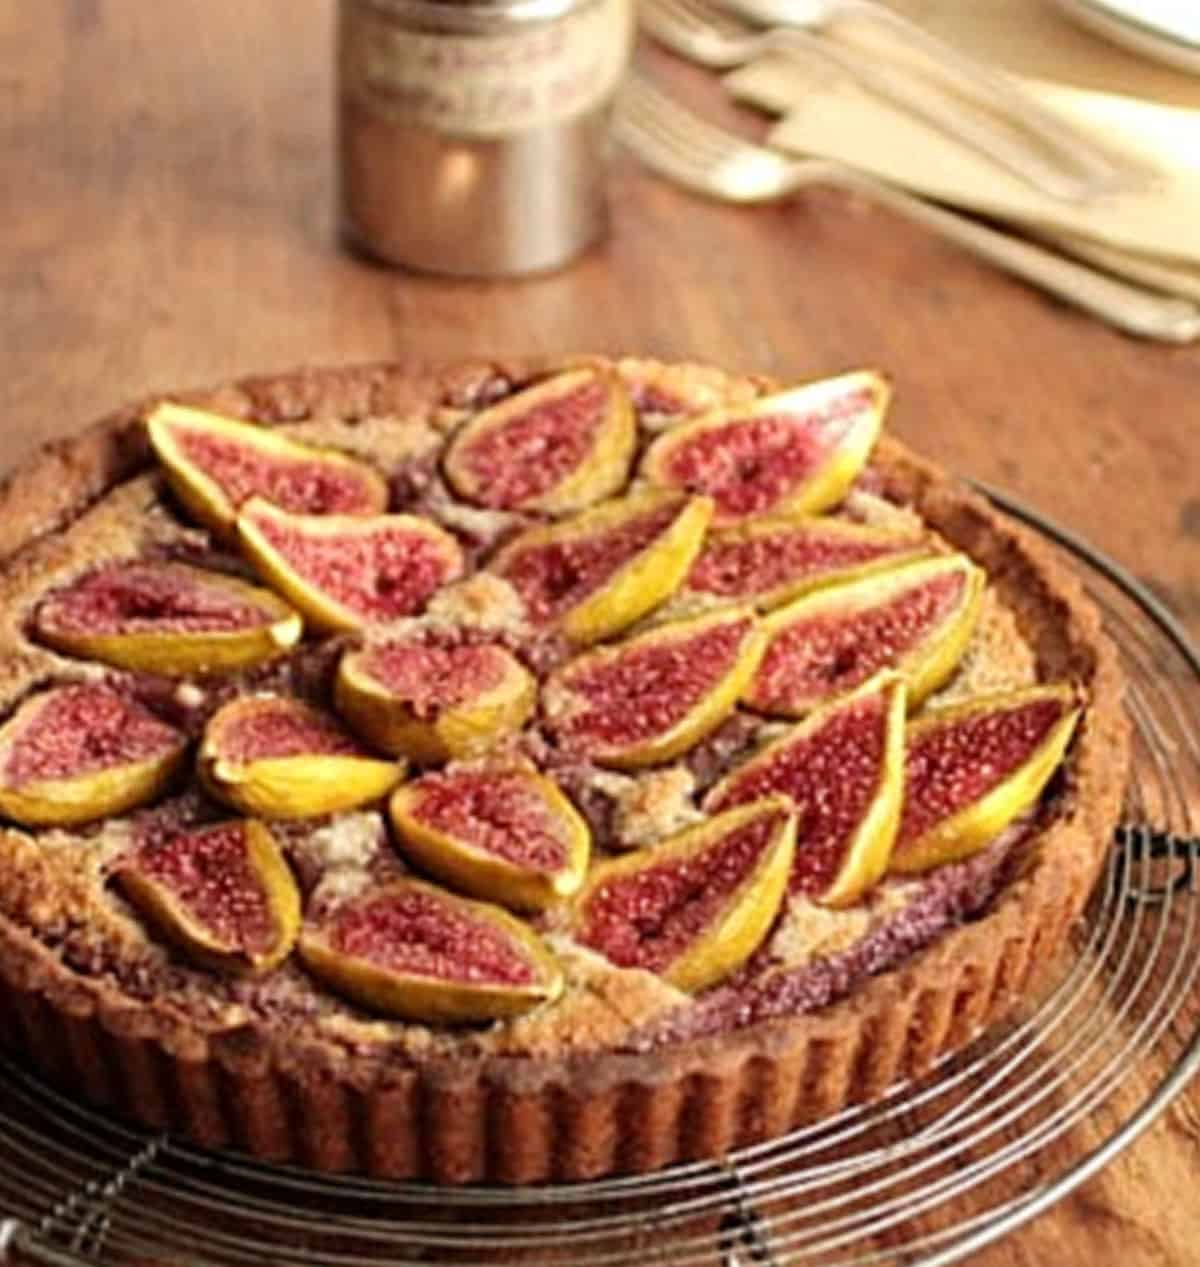 Whole fresh fig tart on wire rack on wooden table